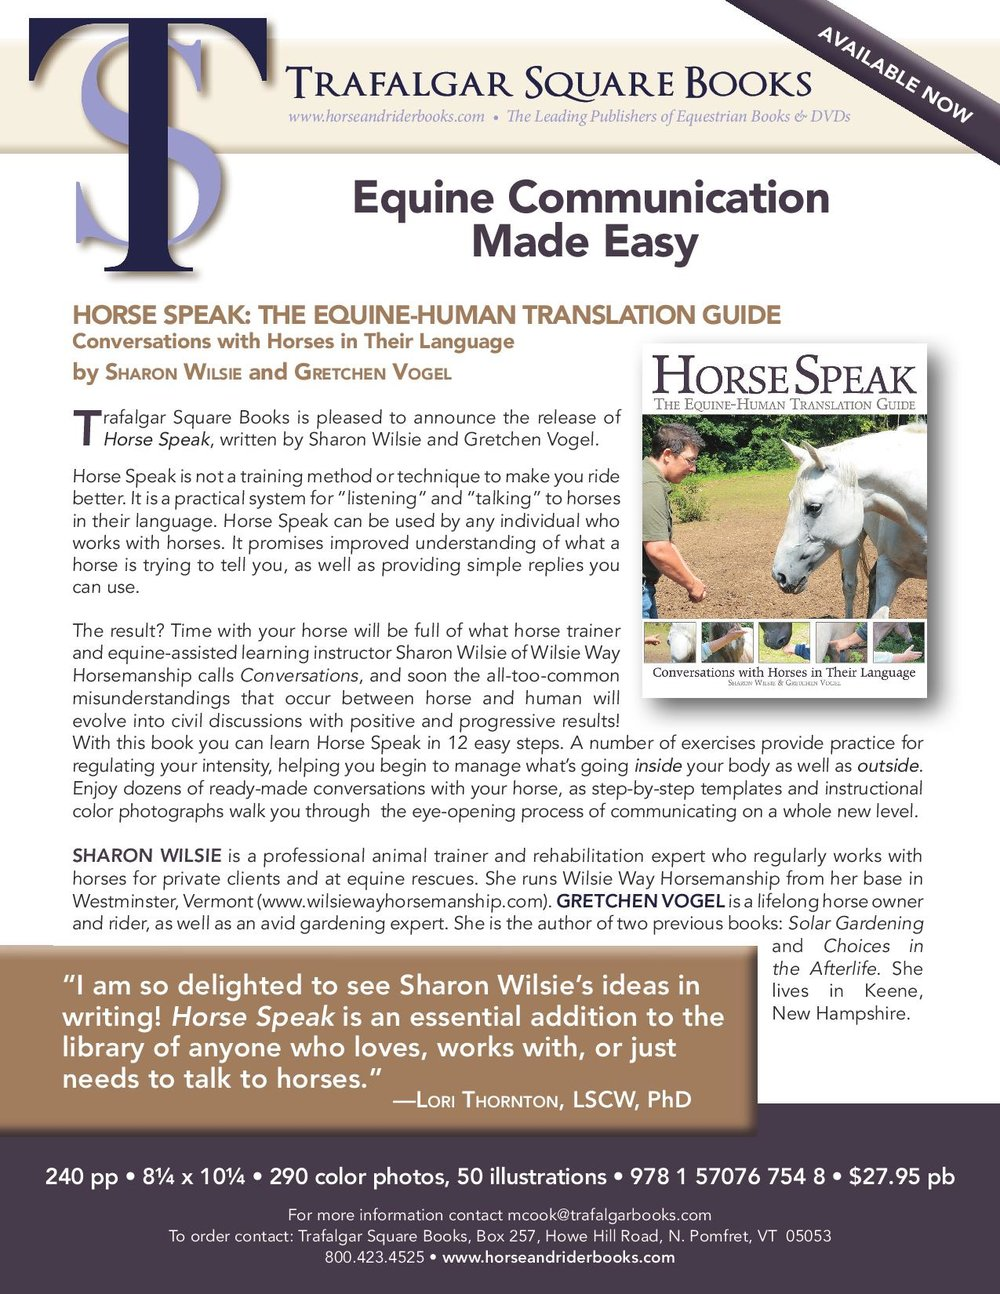 horsespeak PR FINAL AN-page-001.jpg